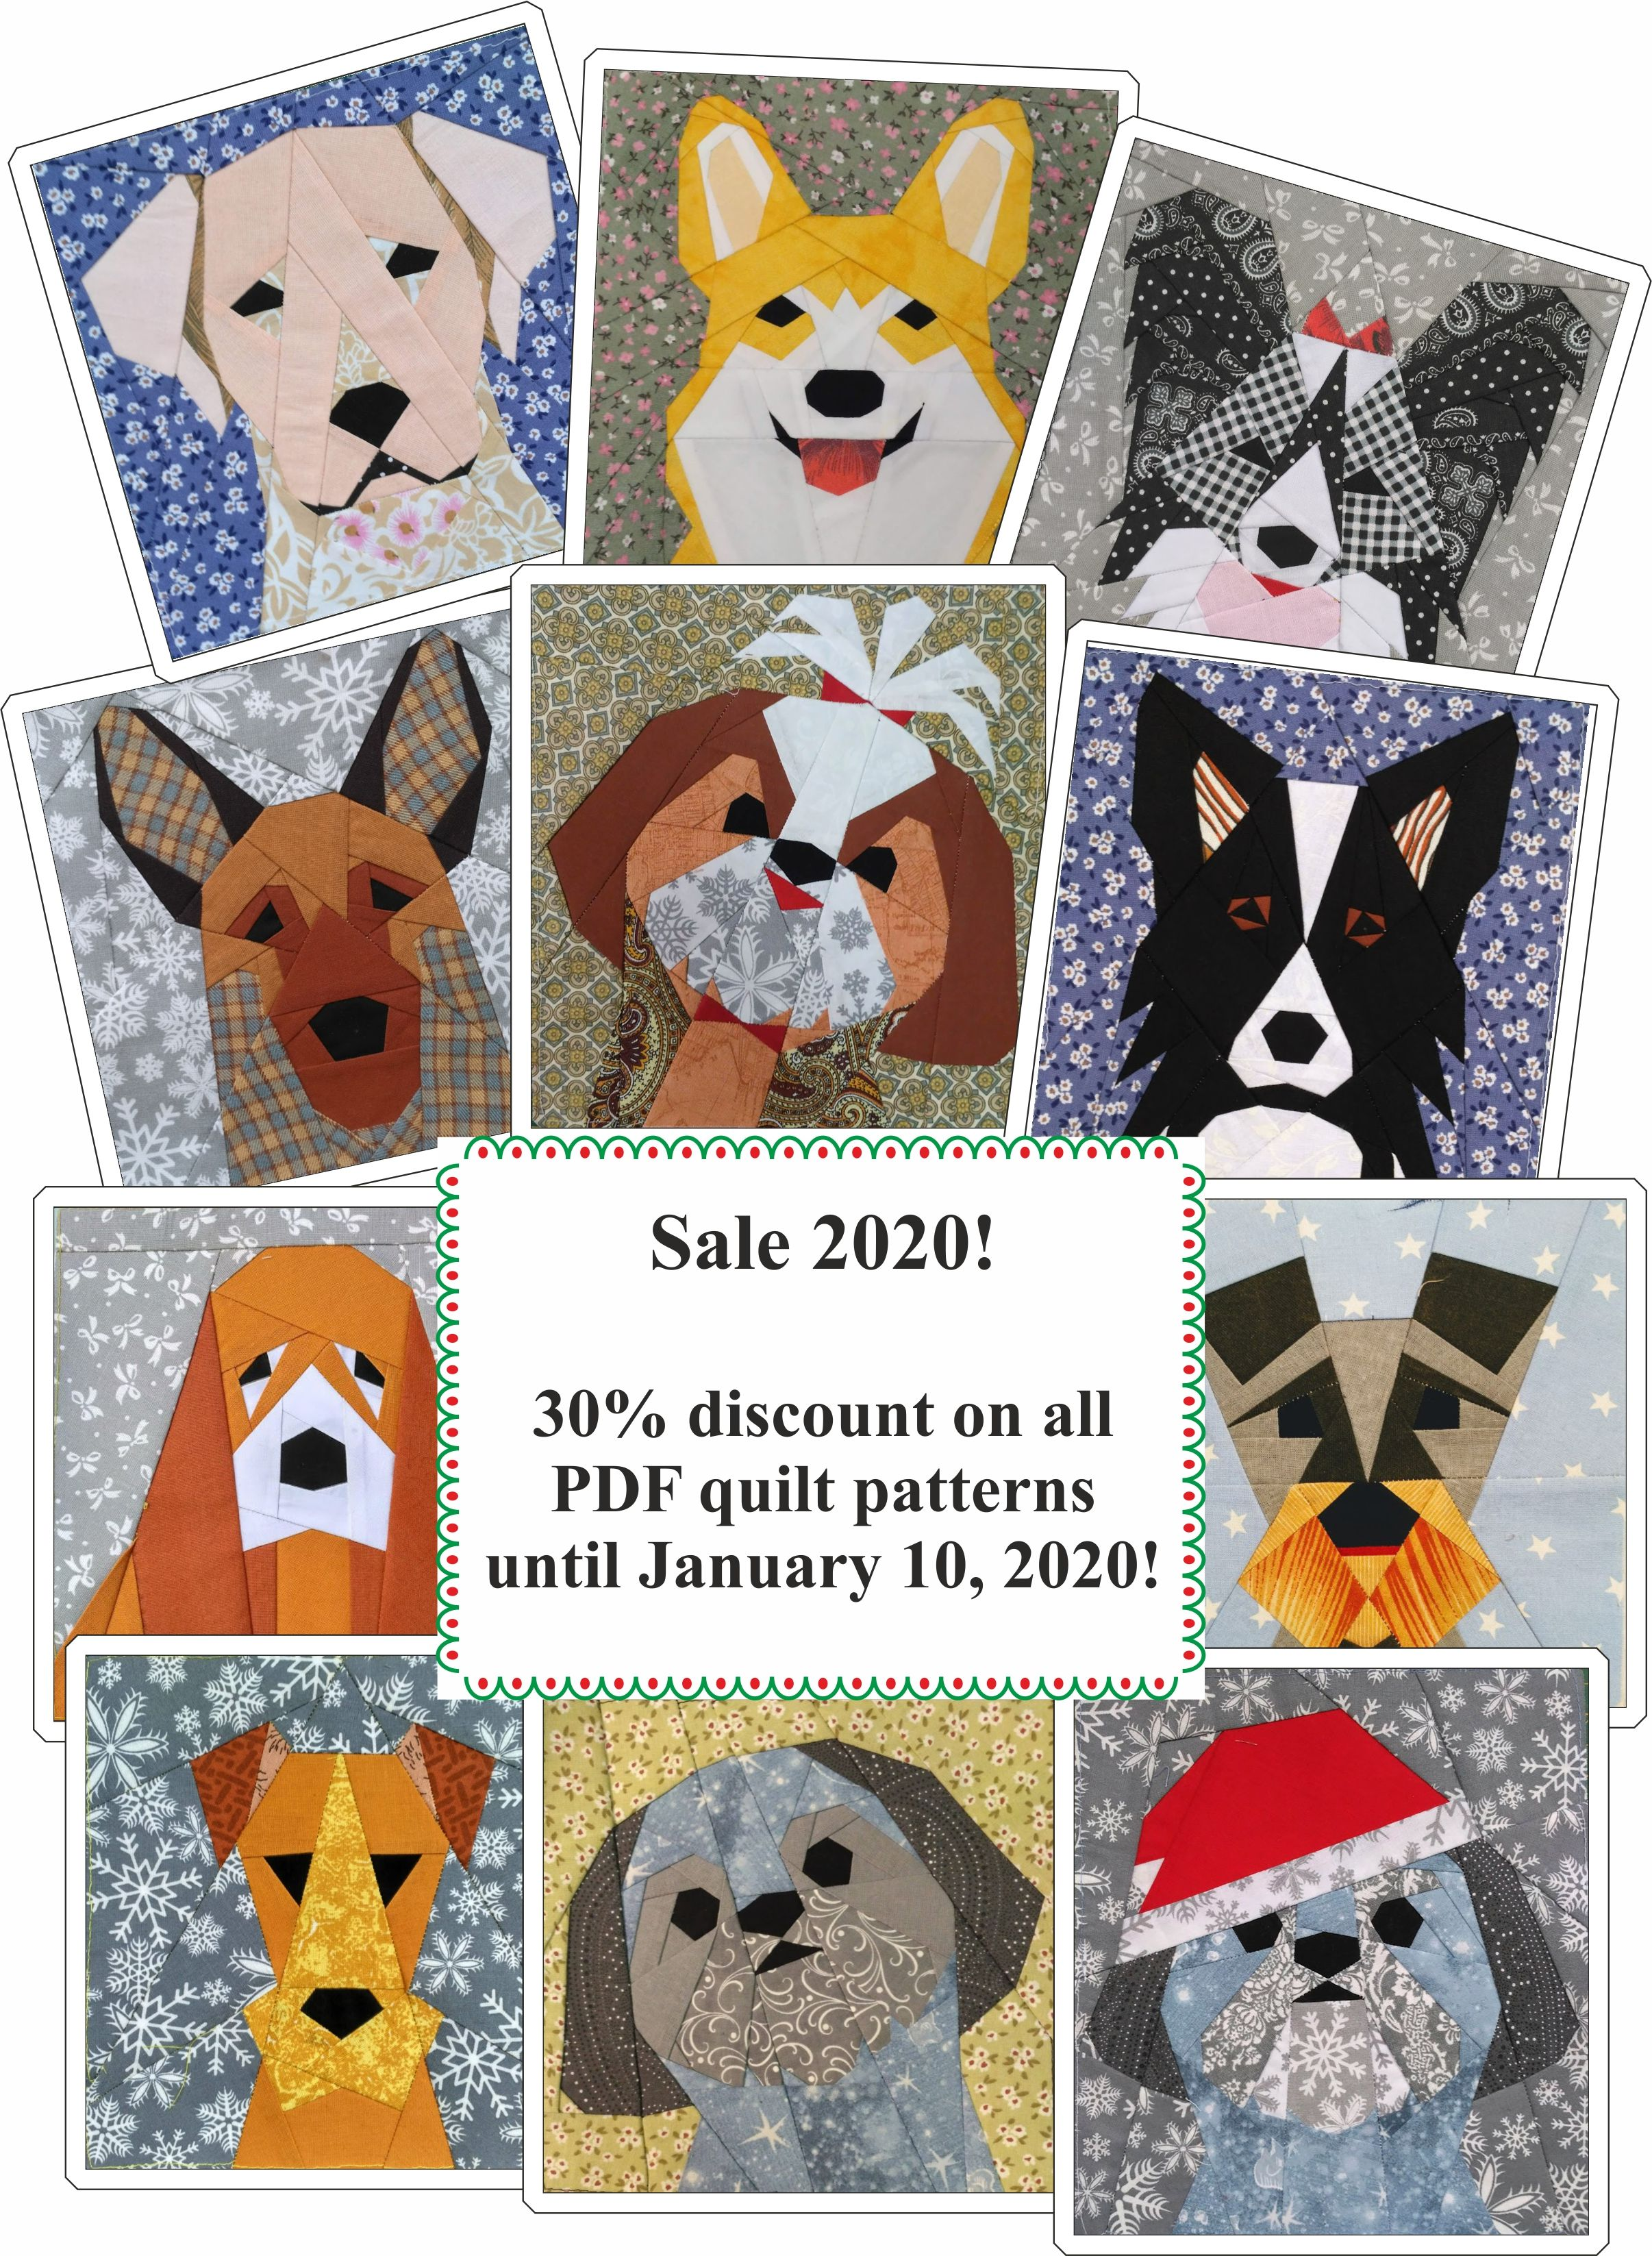 Sale 2020! in 2020 Quilt patterns, Dog quilts, Pdf quilt